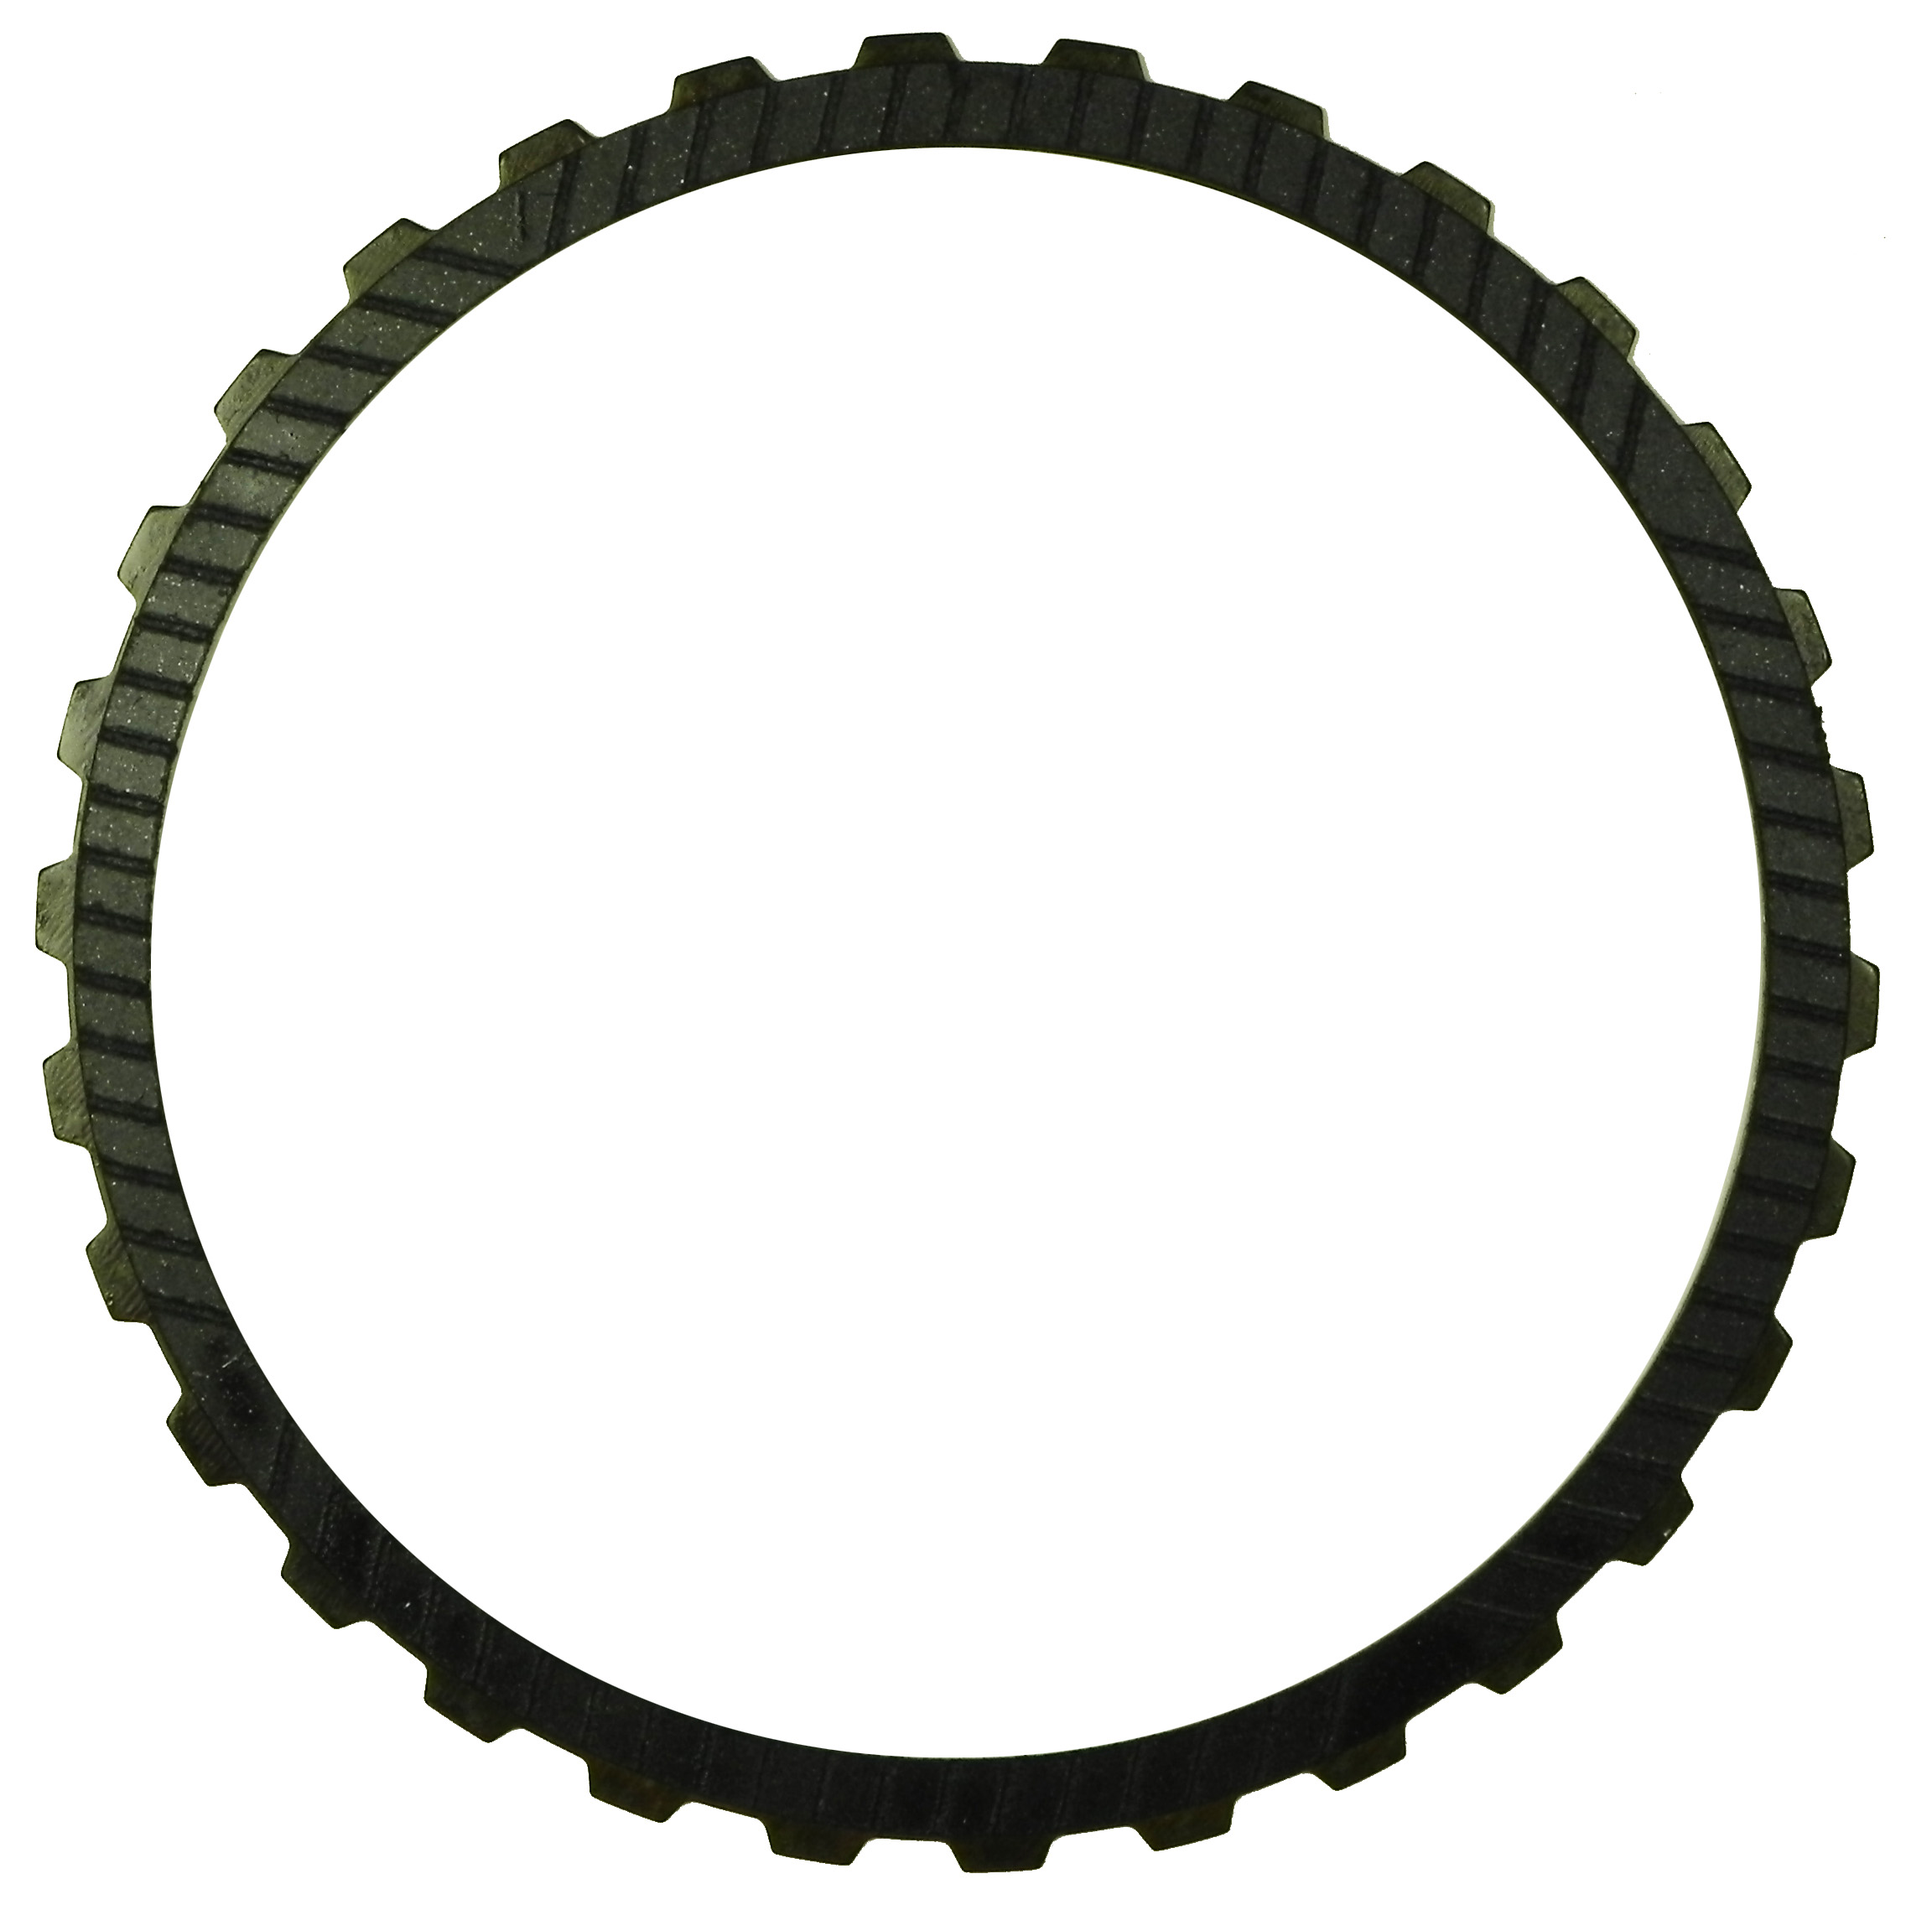 R559800 | 2005-ON Friction Clutch Plate High Energy K2 Clutch Single Sided, OD Spline High Energy